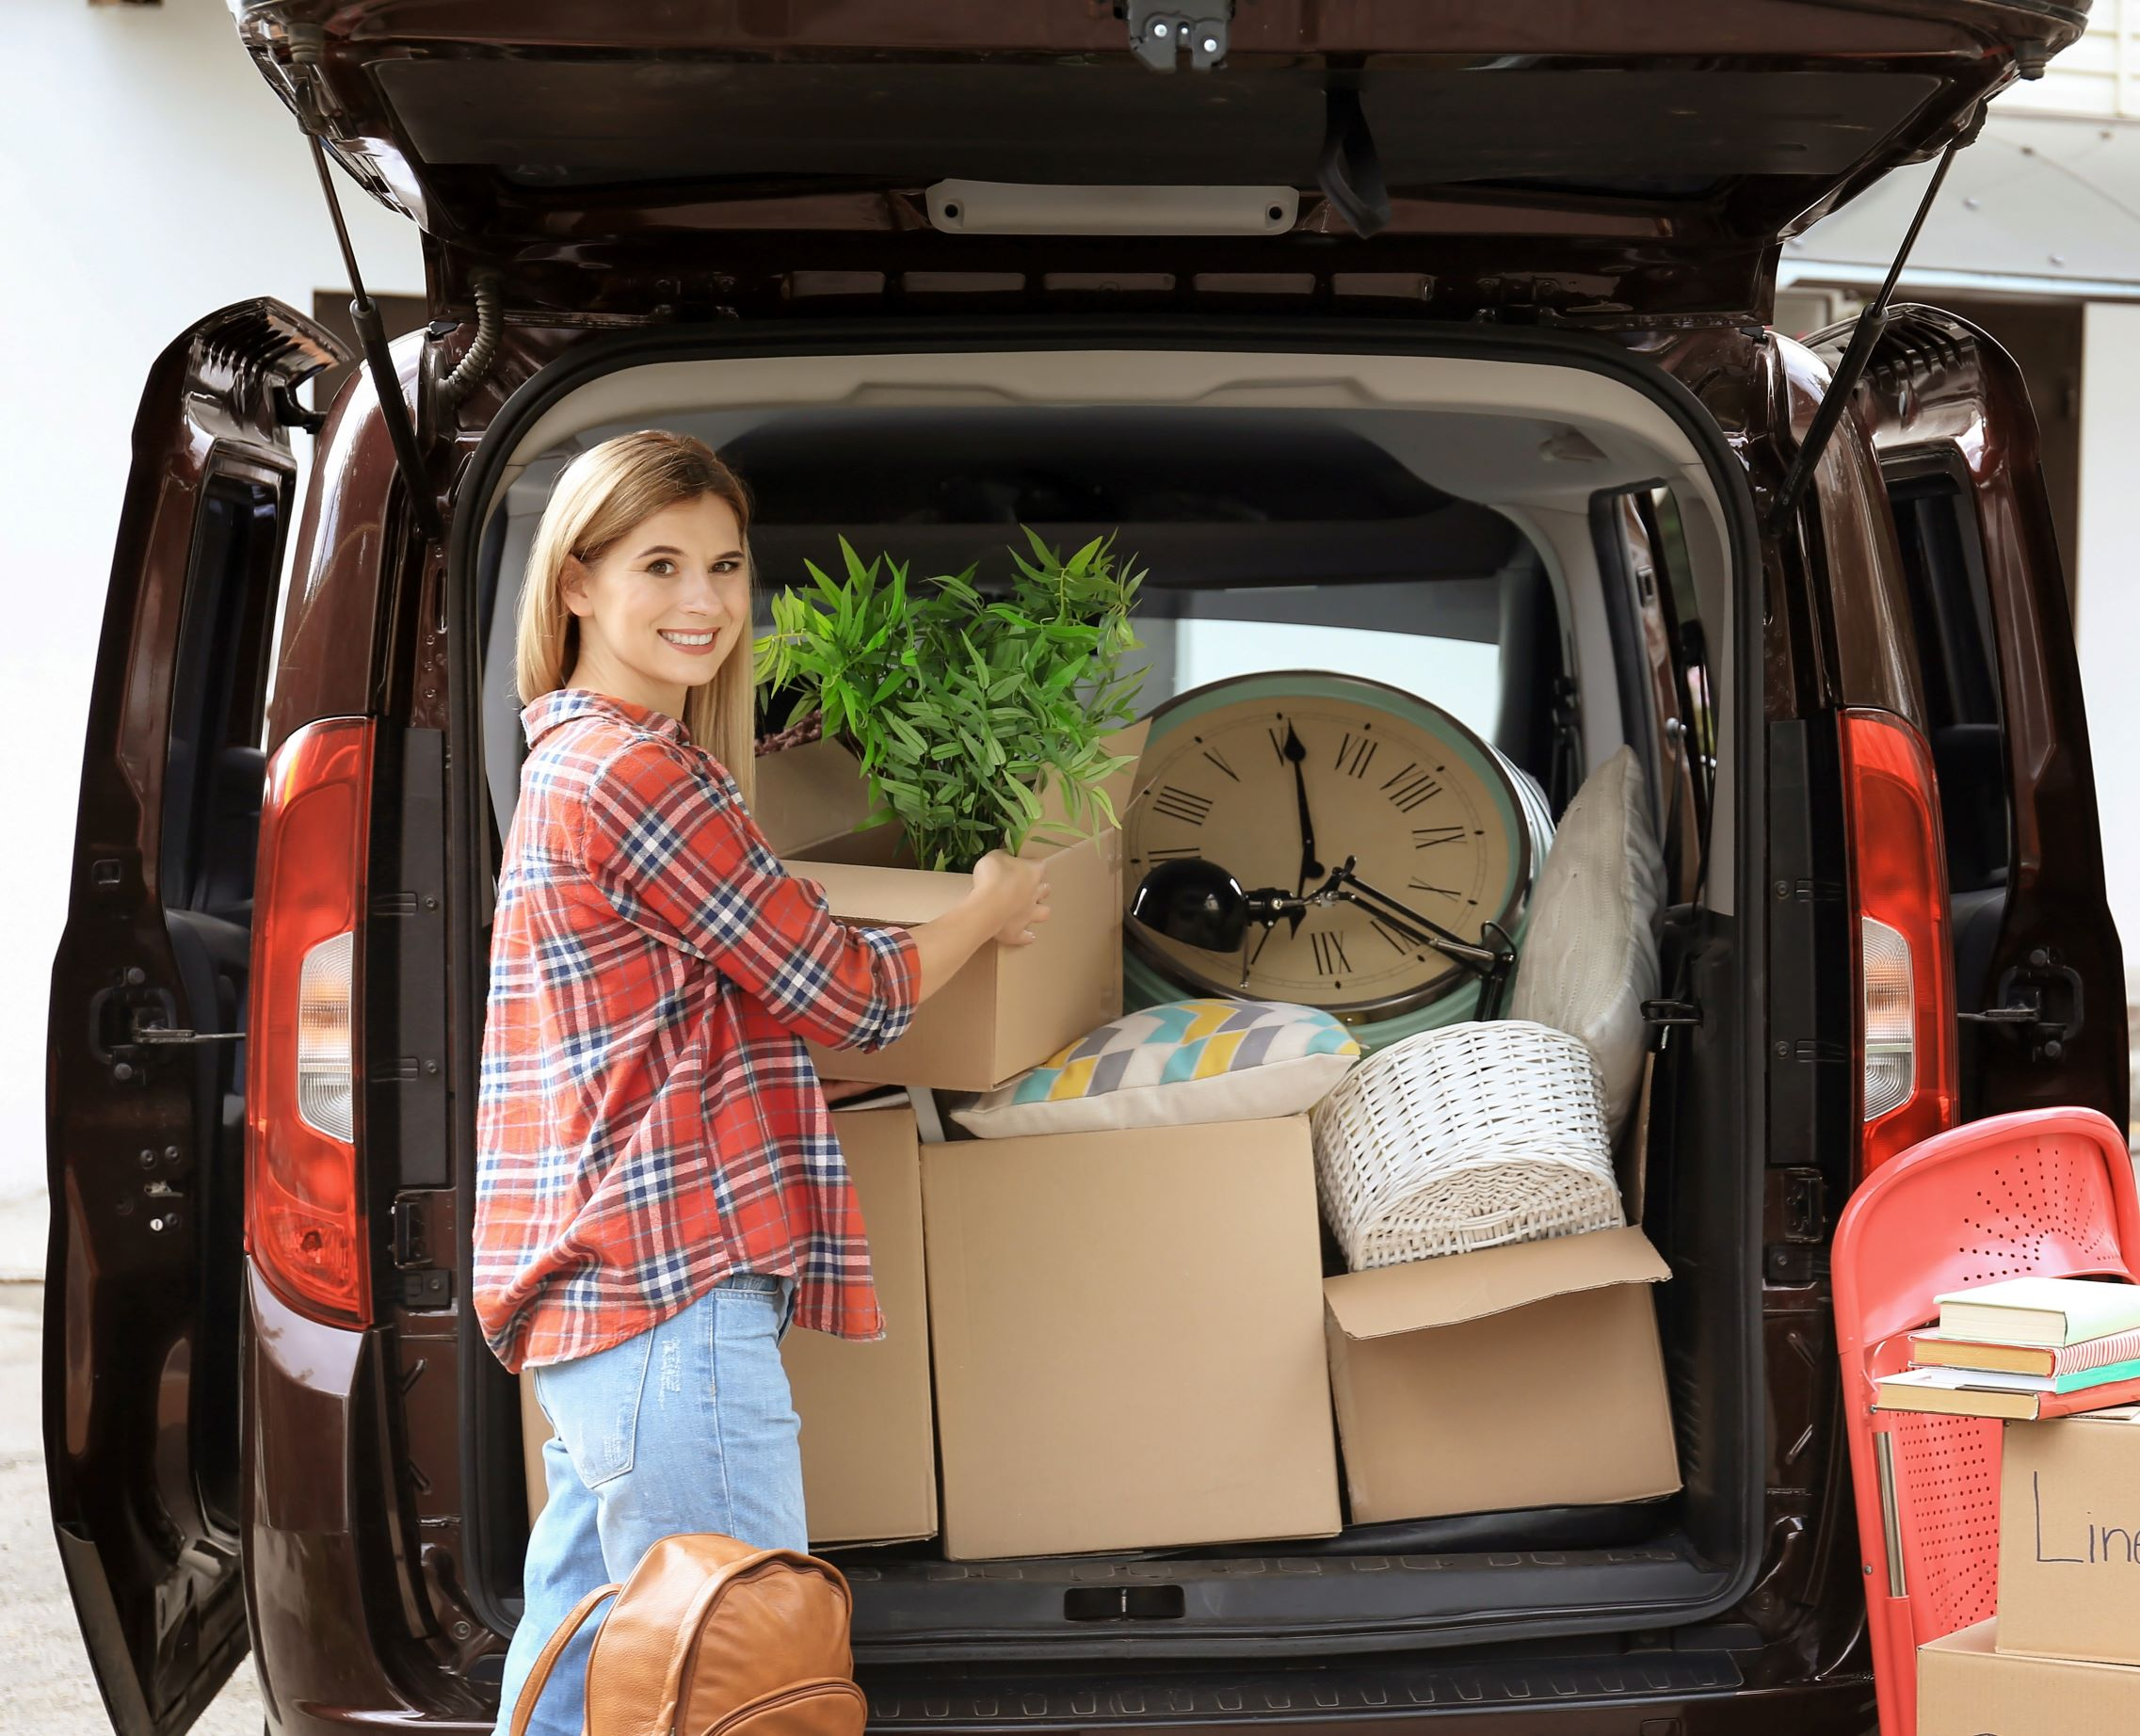 Top tips for a smooth arrival into your University accommodation